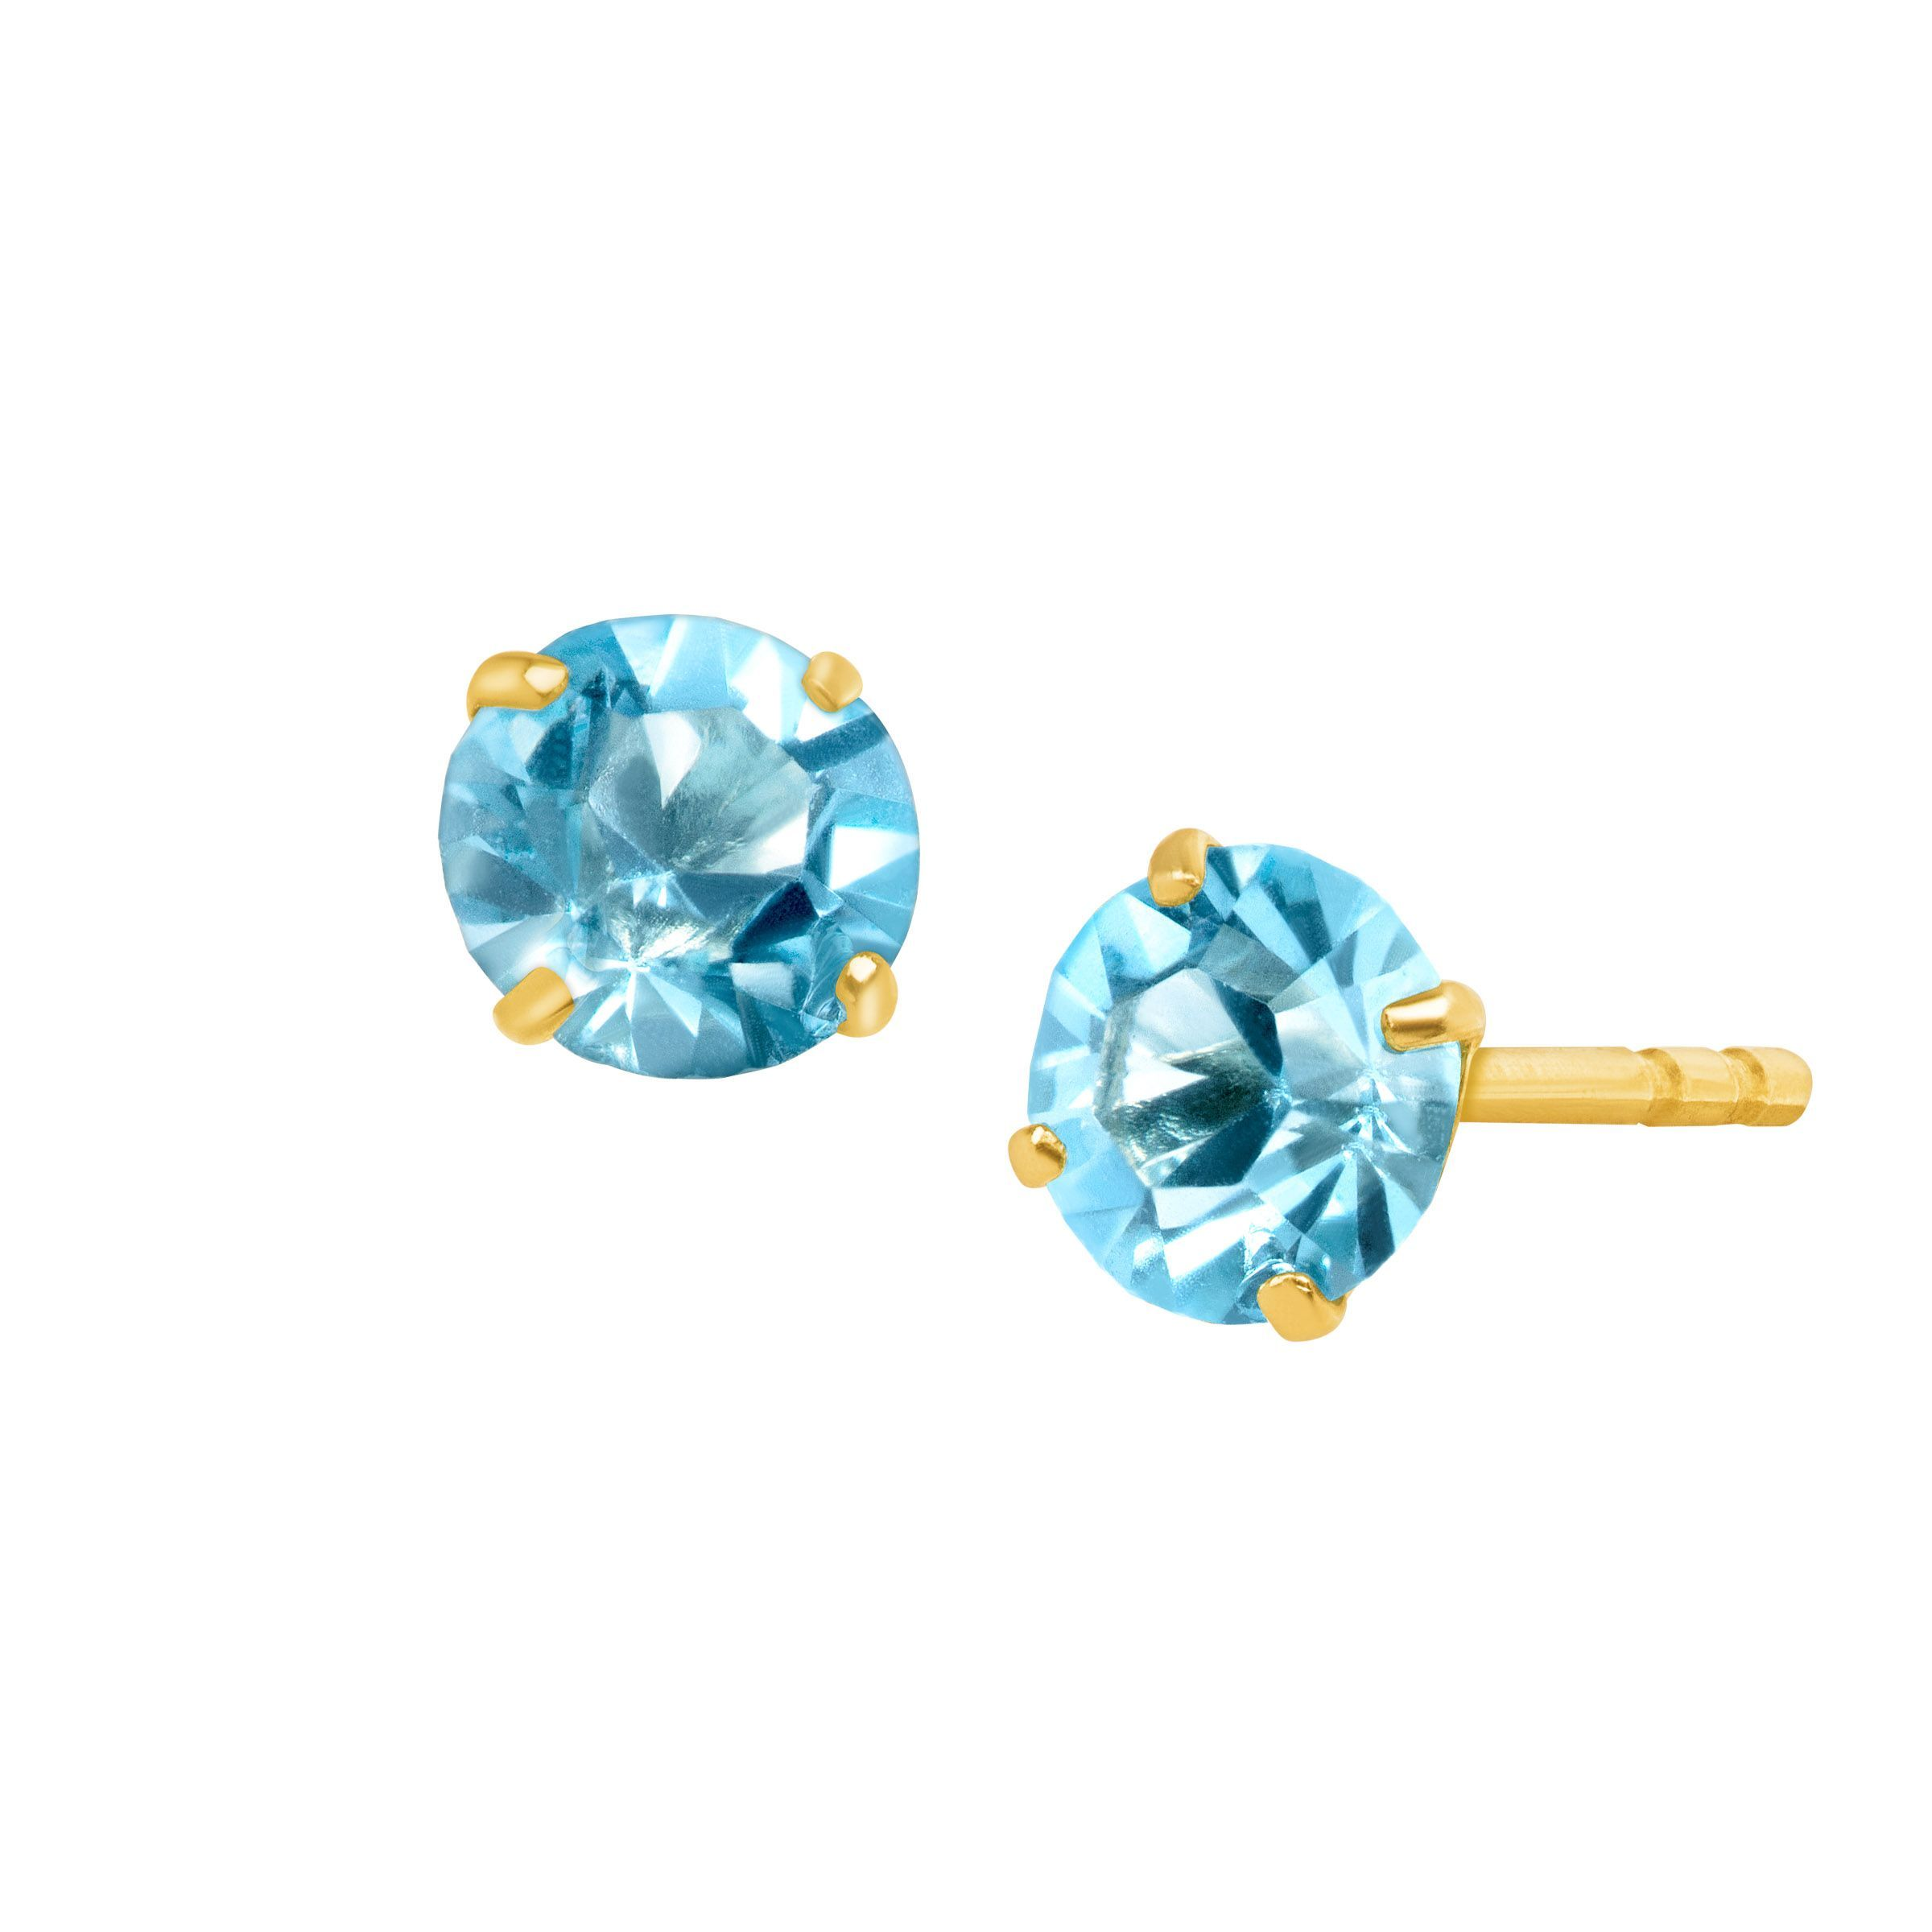 aqua color wiki crystals made plated with stud file marine earrings aquamarine swarovski rhodium